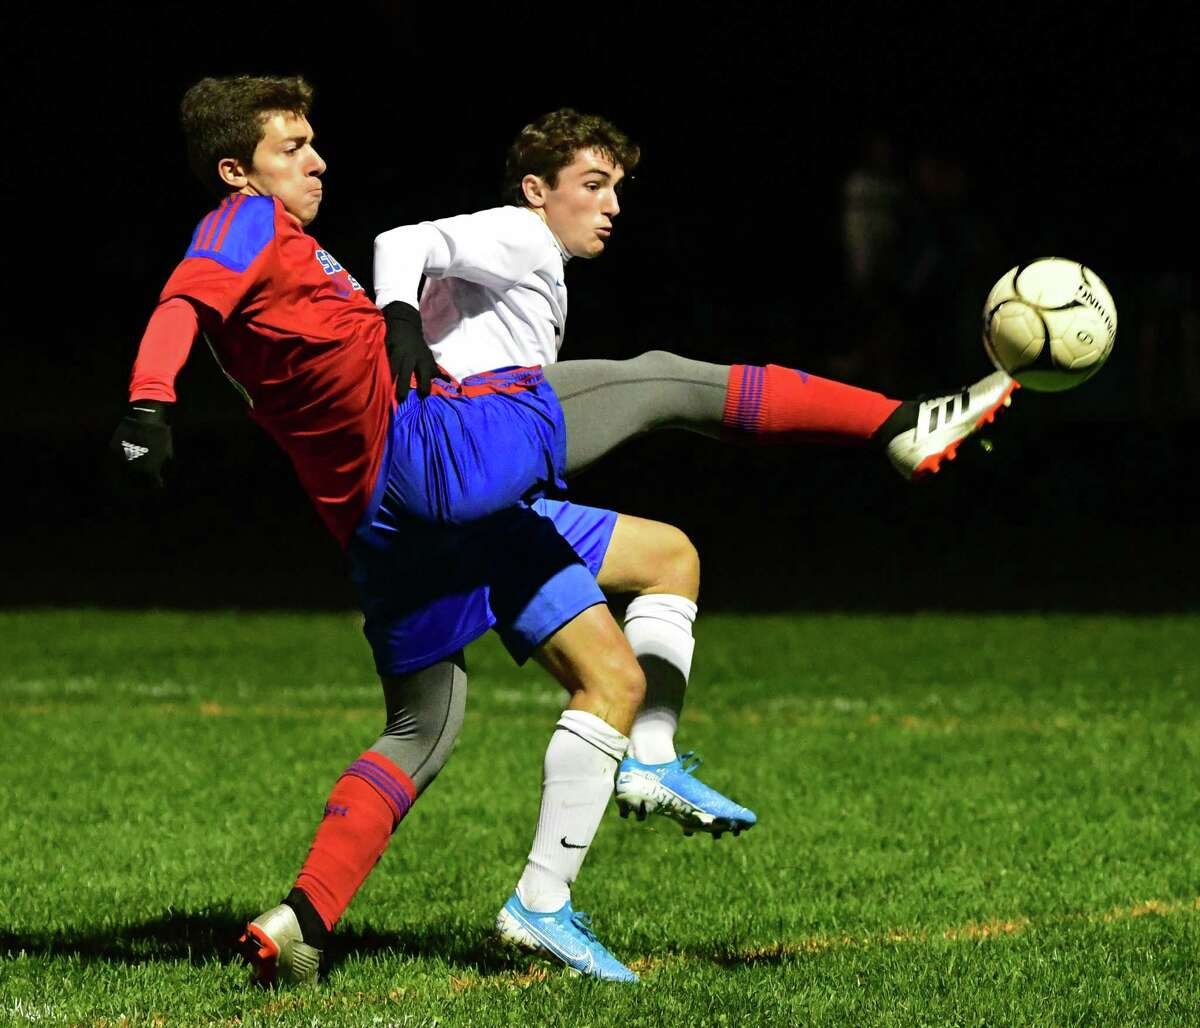 South Glens Falls' Justin Nesbitt, left, battles for the ball with Queensbury's Teddy Borgos during a soccer game on Wednesday, Oct. 2, 2019. The Suburban Council schools won't be able to start their season before March 1. (Lori Van Buren/Times Union)